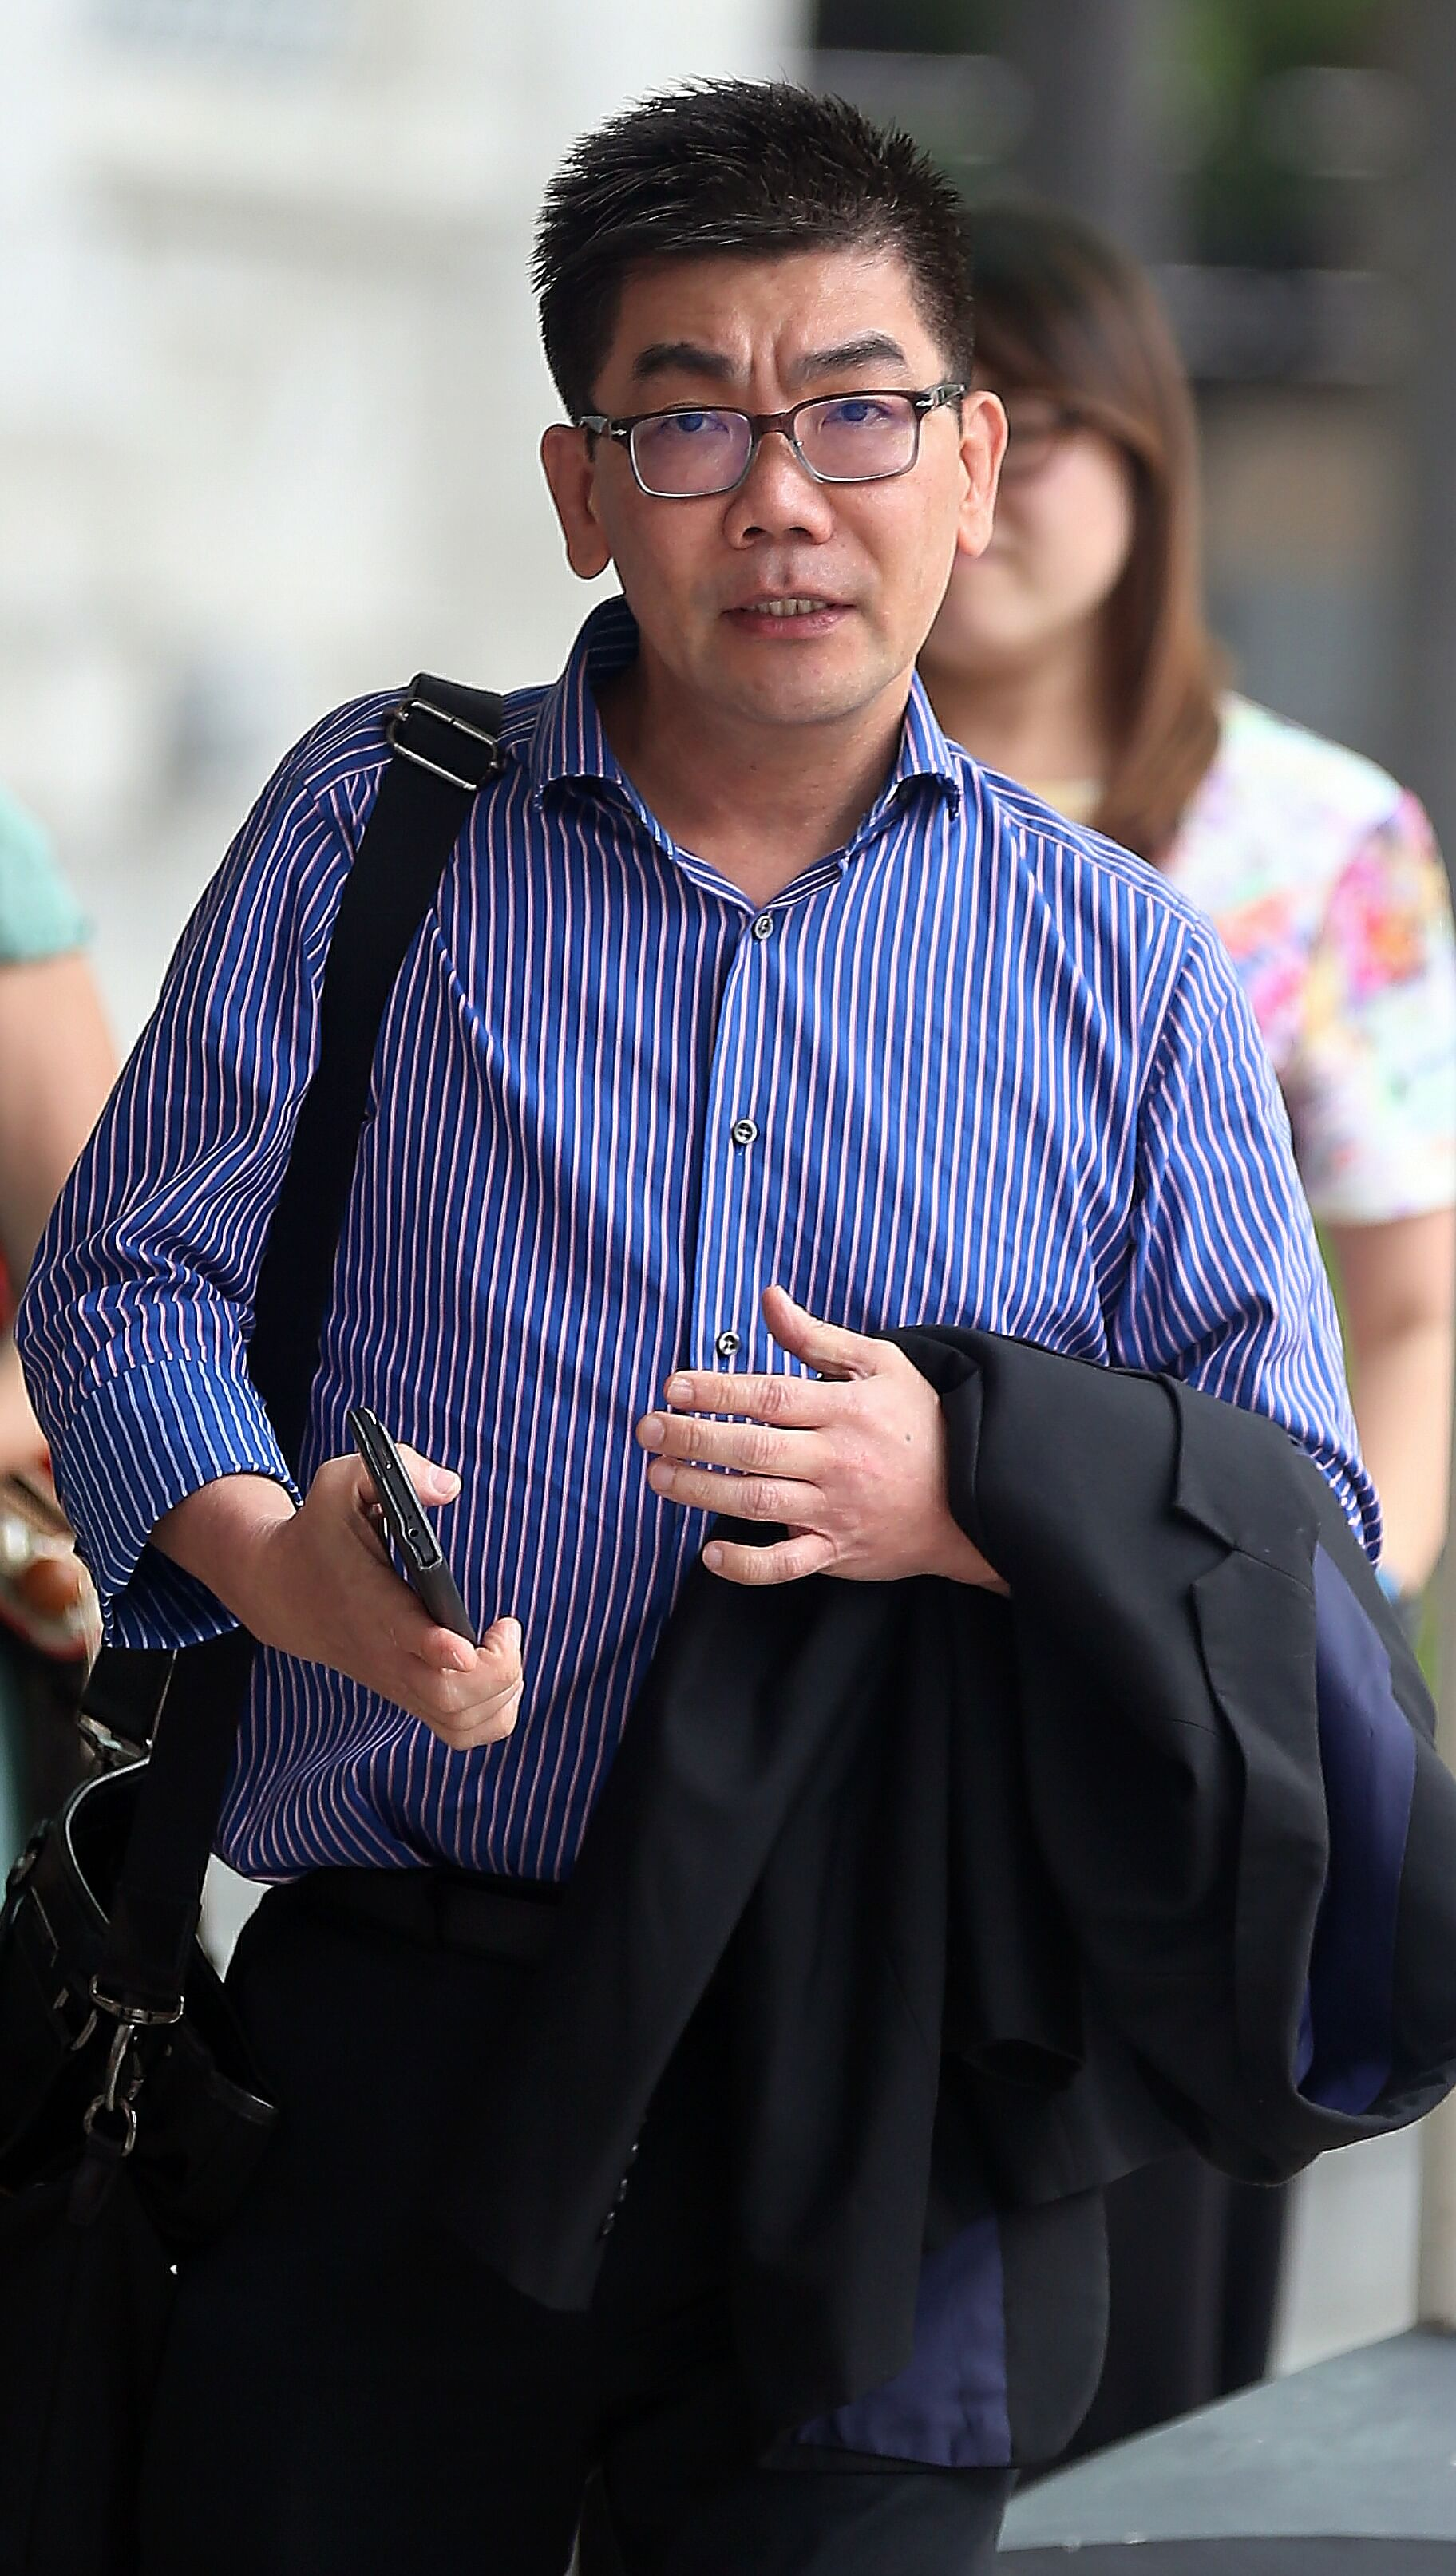 Cosmetic doctor gets 42 months' jail for molesting male patient ...